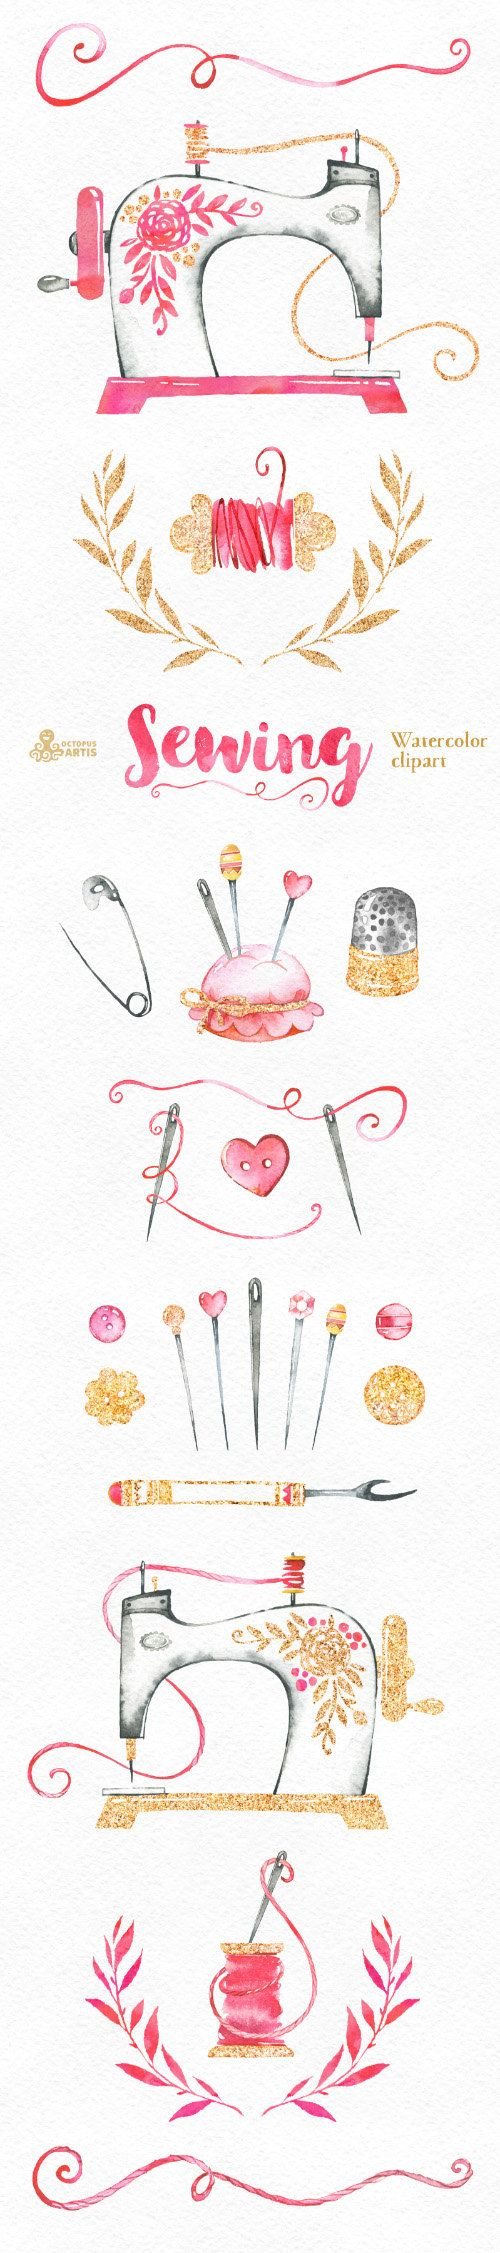 This is Great Kit of 58 high quality hand painted Sewing Clipart. Perfect graphic for creating logos, identity, invitations, cards, branding, quotes, stickers, planners and more. ----------------------------------------------------------------- INSTANT DOWNLOAD Once payment is cleared, you can download your files directly from your Etsy account. ----------------------------------------------------------------- This listing includes: 58 x Individual Elements in PNG (transparent backgroun...